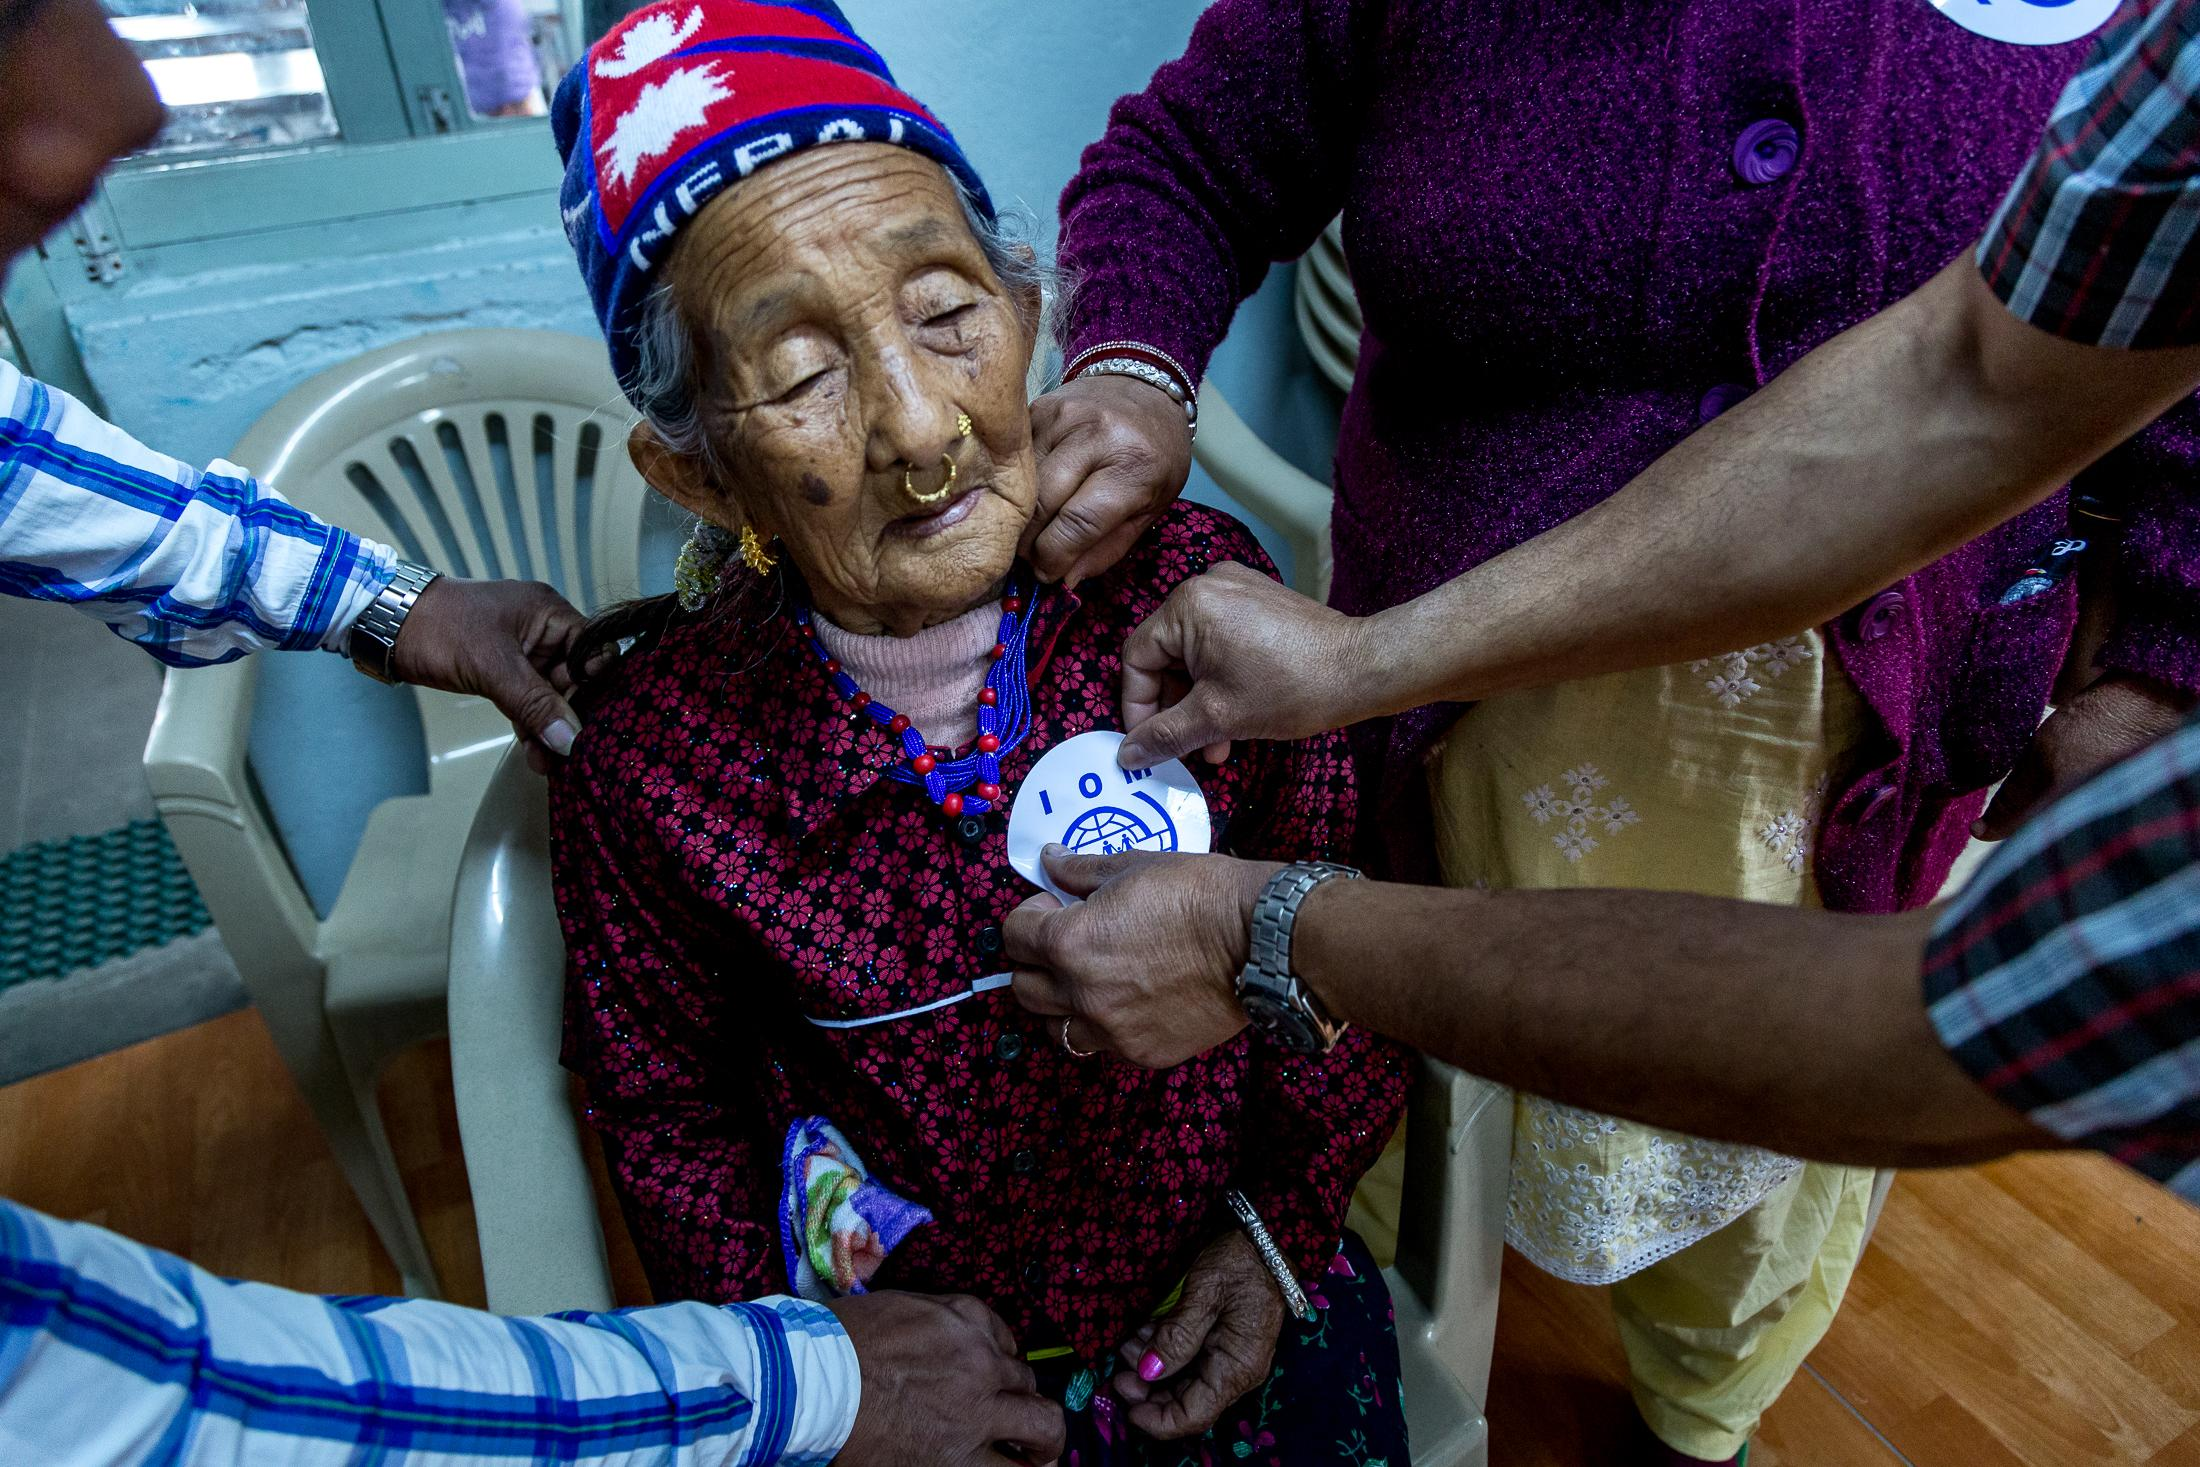 KATHMANDU, NEPAL - MARCH 23, 2015: An IOM staff member places an IOM identification sticker in Dhan Maya Rai's jacket, 87 years old, while she attends her departure briefing minutes before traveling to Kathmandu airport to be resettled in the United States on March 23, 2015 in Kathmandu, Nepal. Photo: © Omar Havana